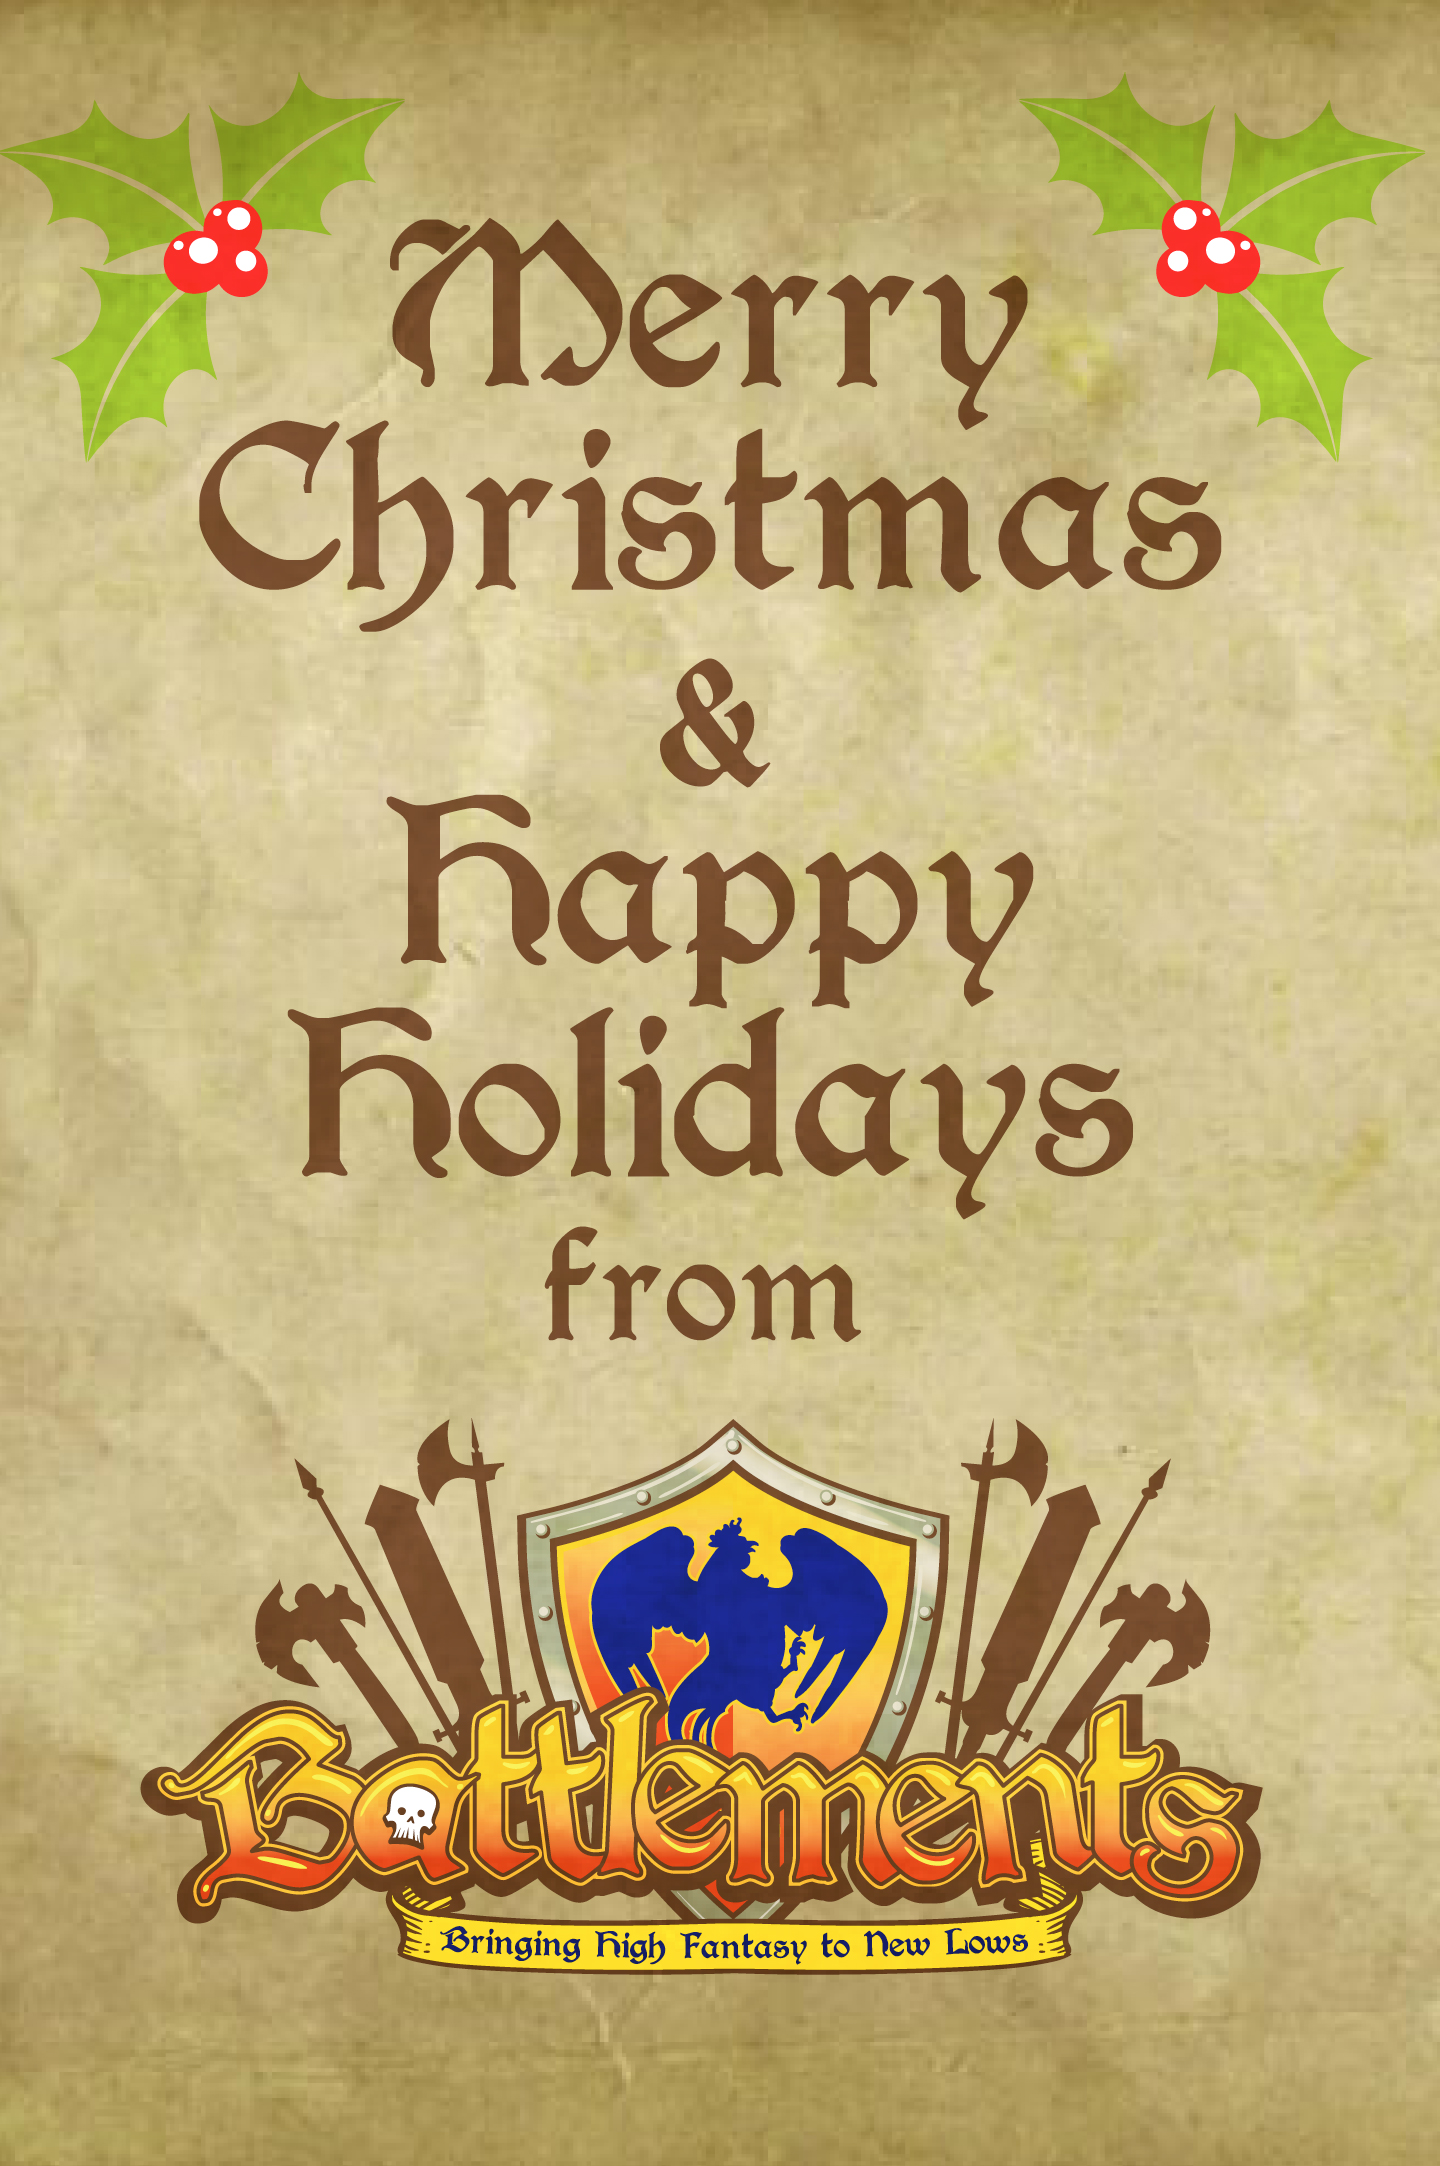 Happy Holidays from Battlements